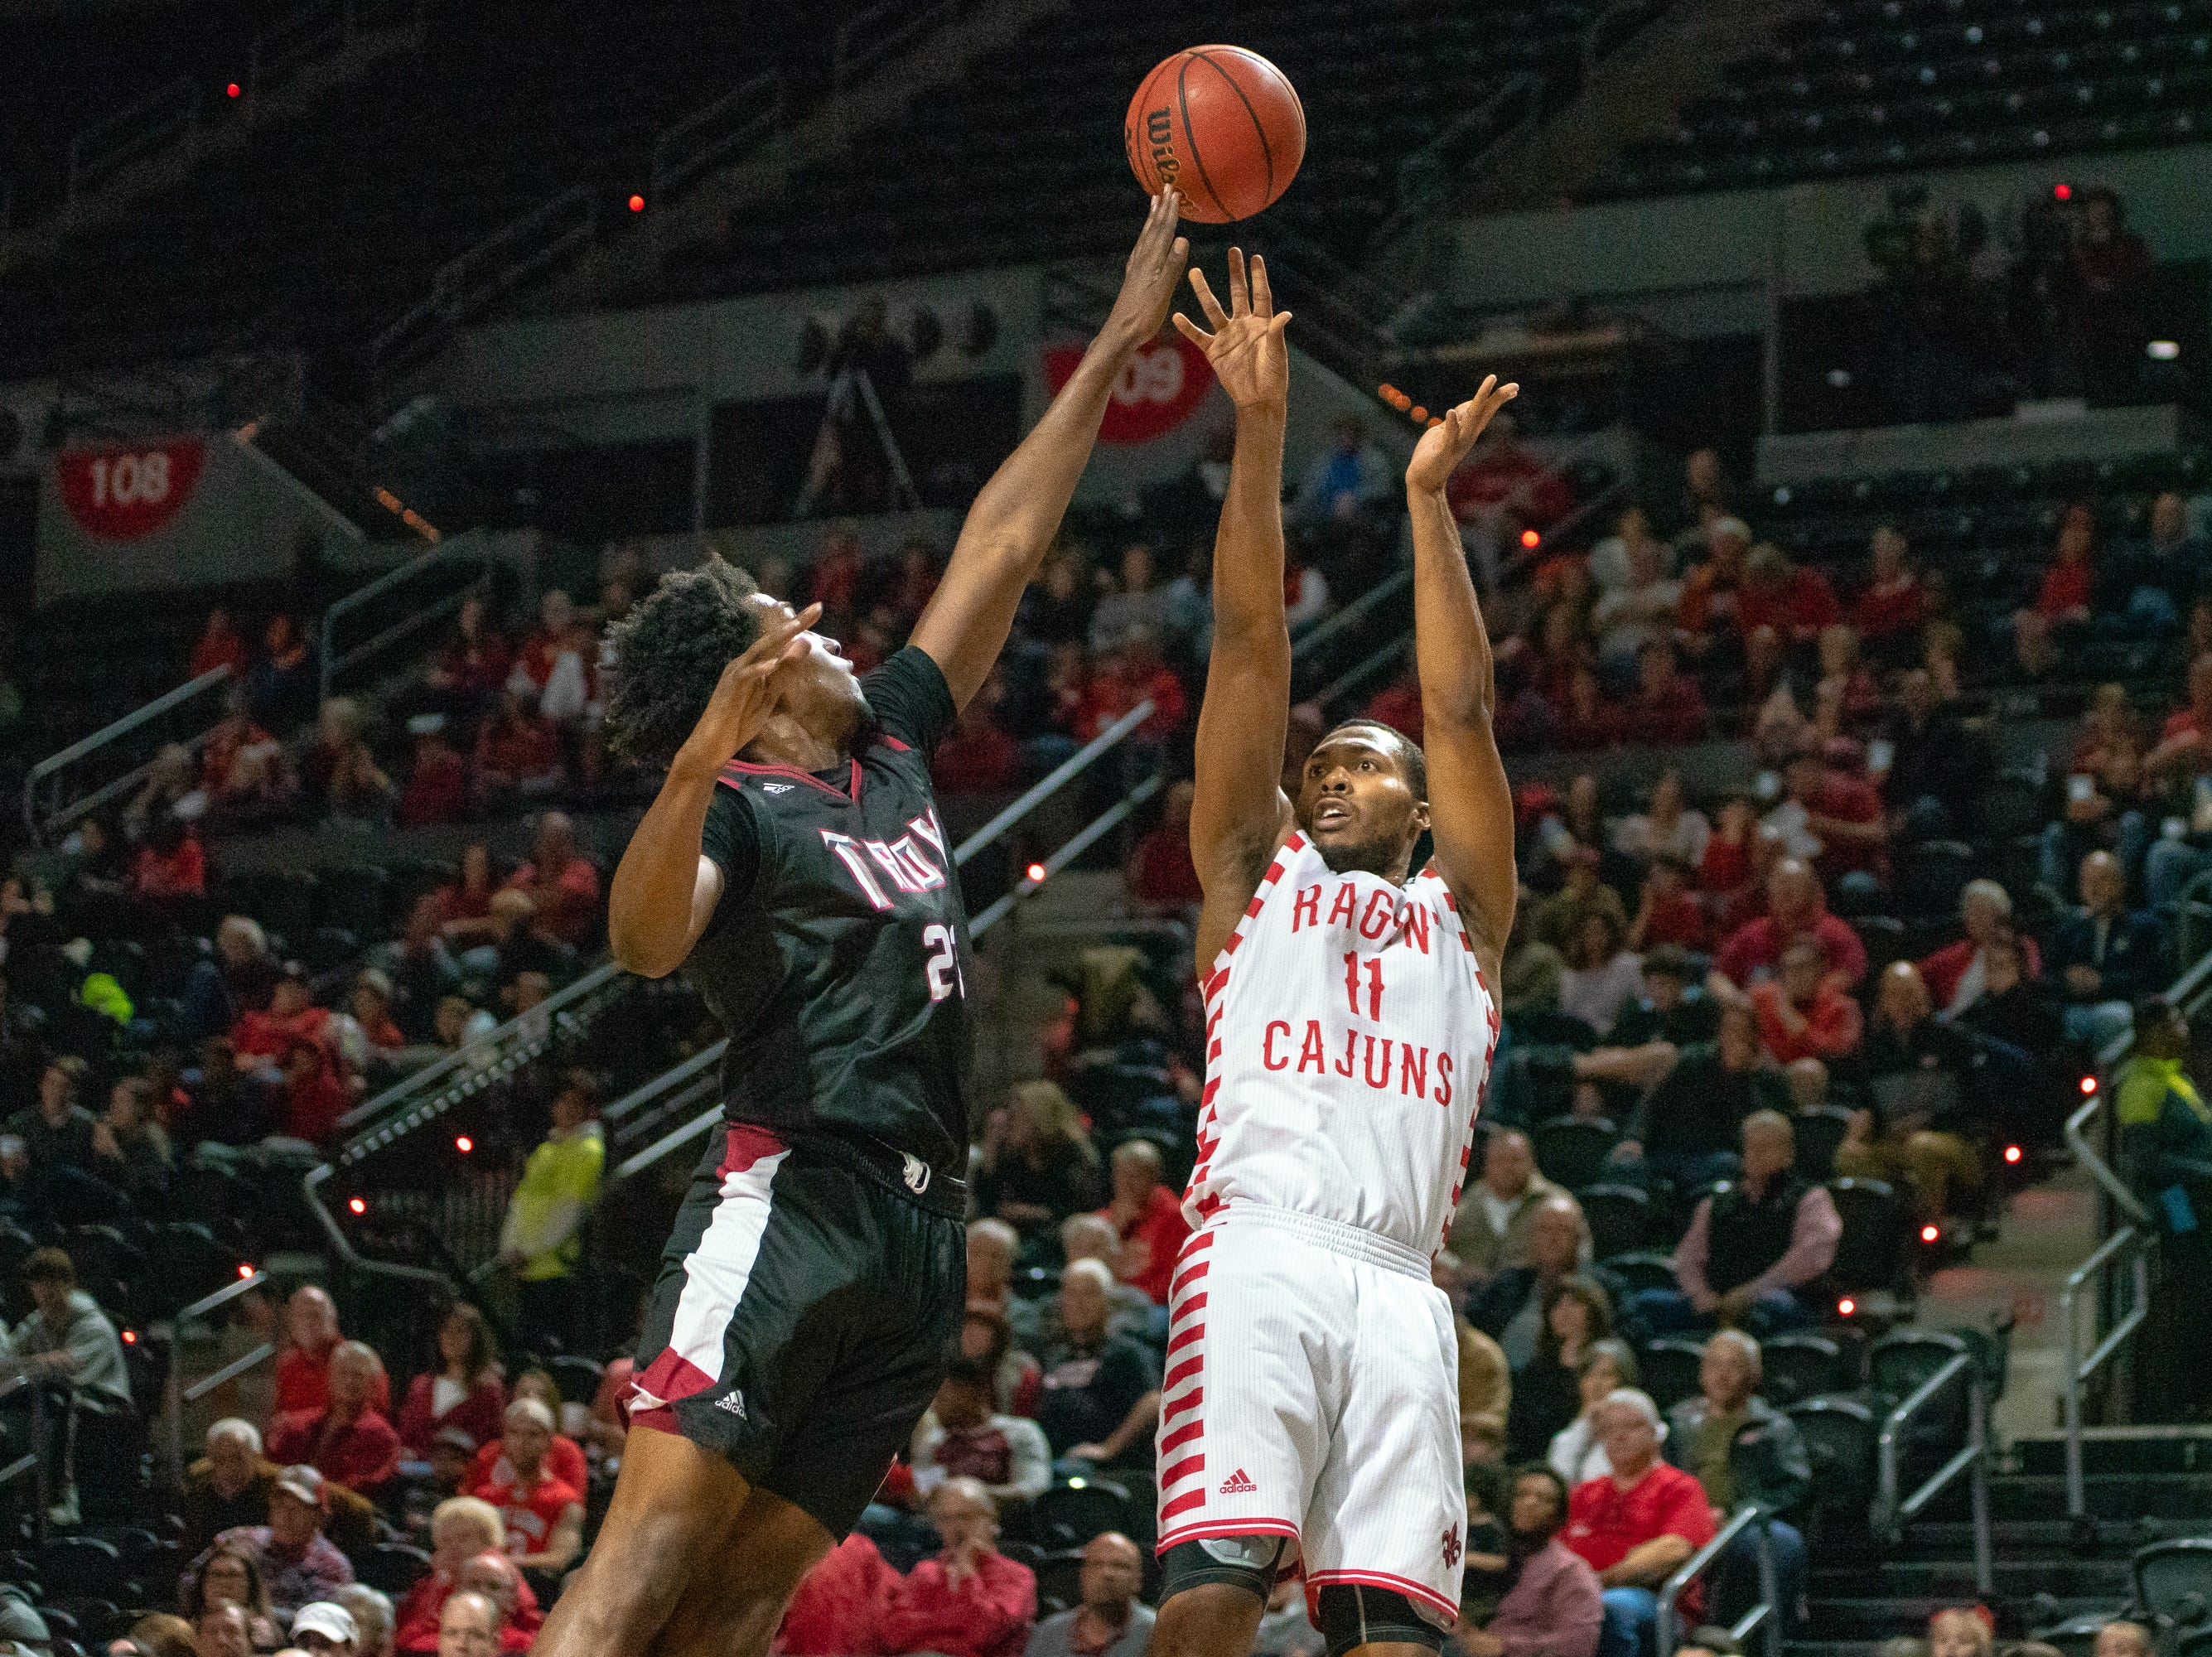 UL's Jerekius Davis (11) shoots from the three-point line as the Ragin' Cajuns take on the Troy Trojans at the Cajundome on Jan. 26, 2019.